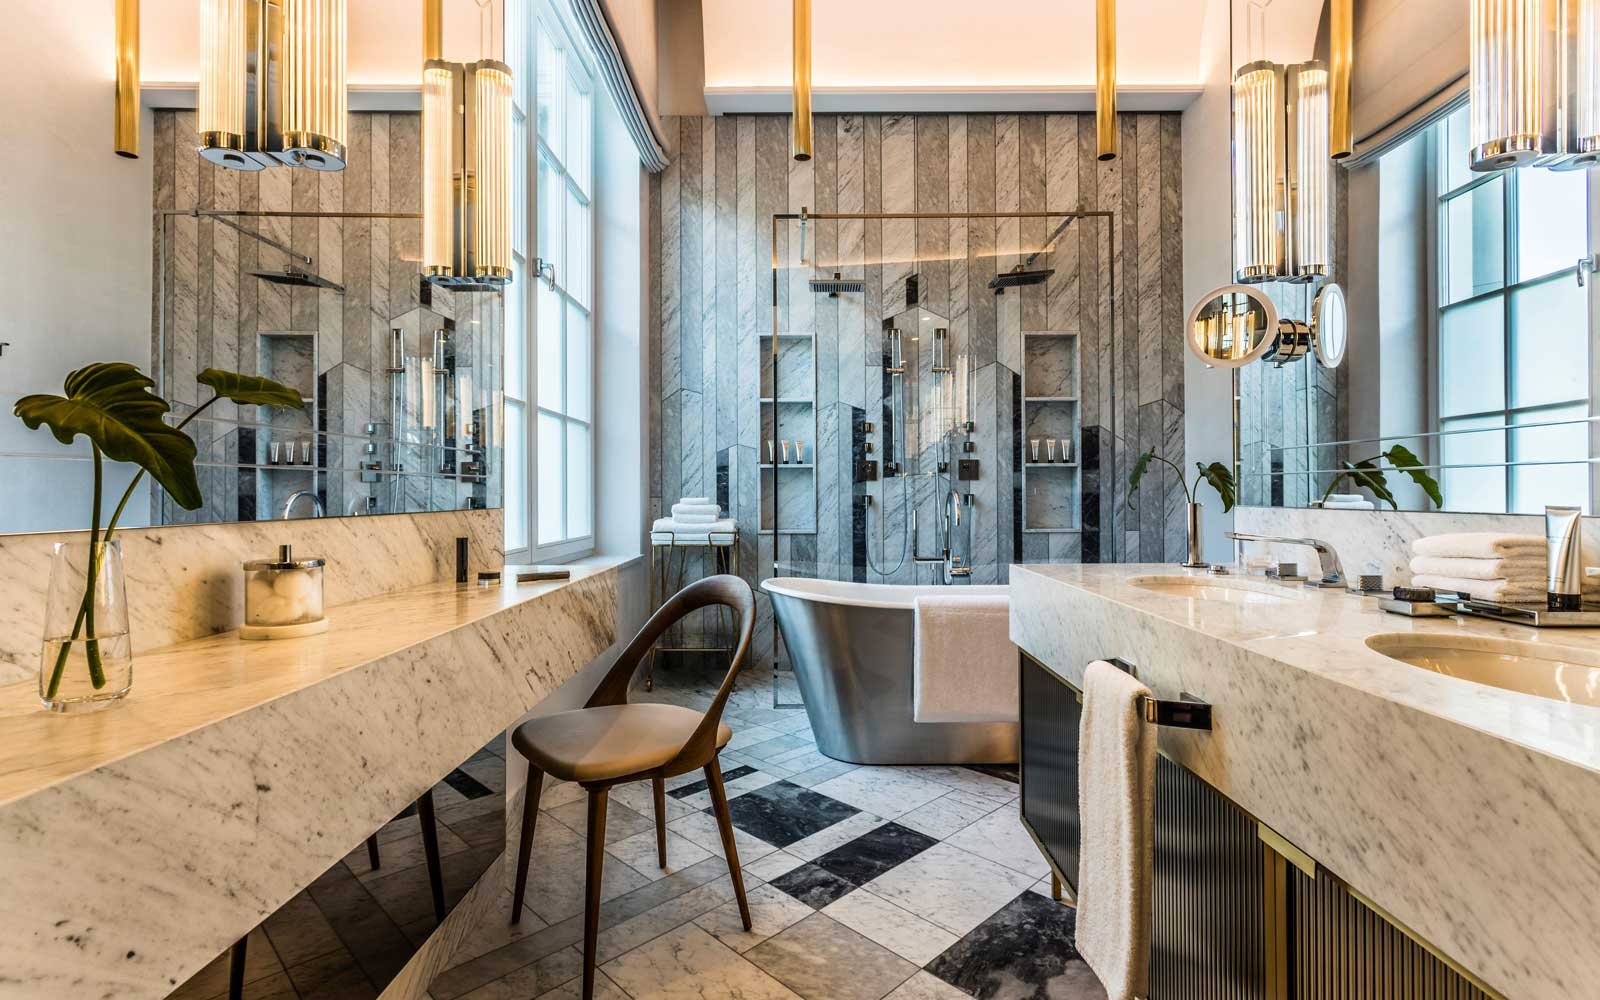 Bathroom in a Signature Suite at the Raffles Europeskji hotel in Warsaw, Poland